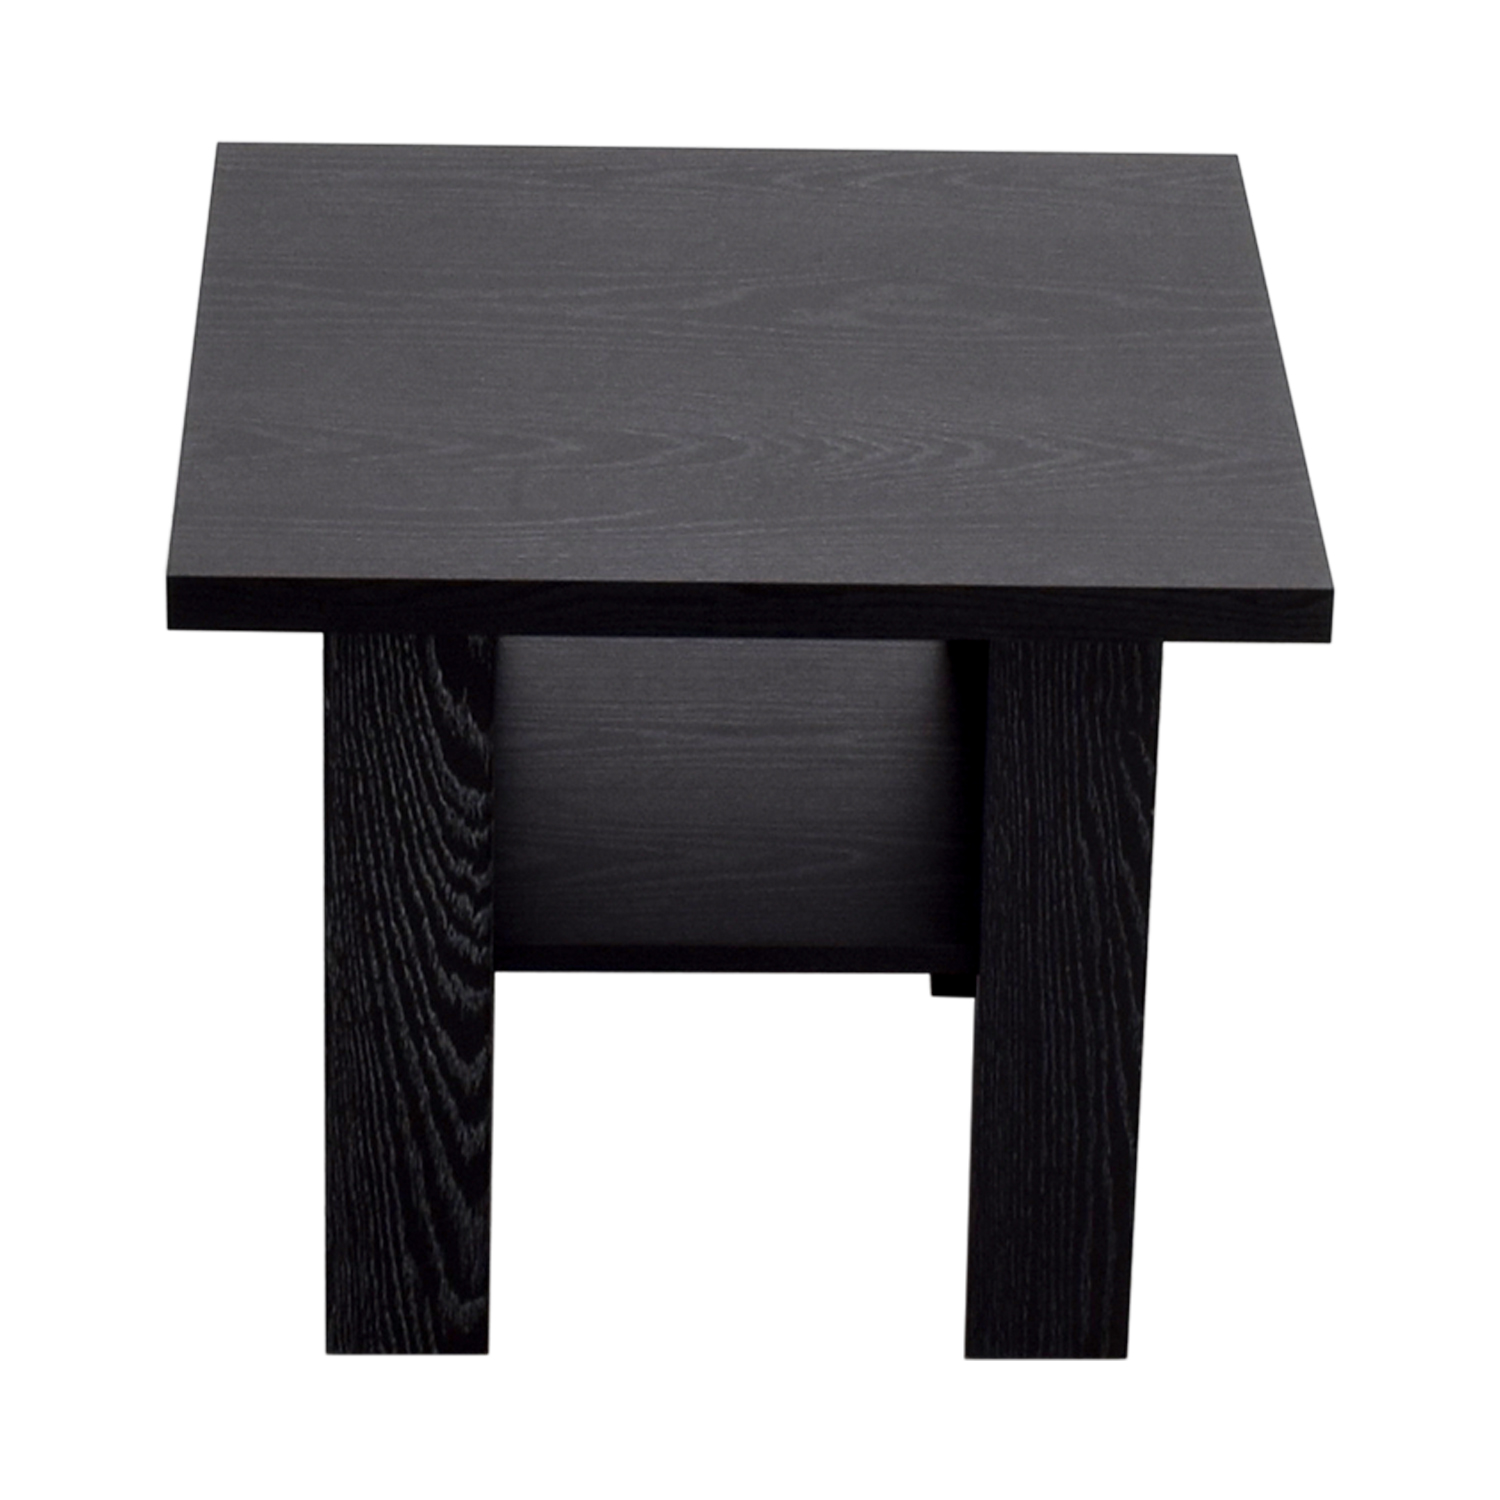 Black Square Side Table with Shelf on sale